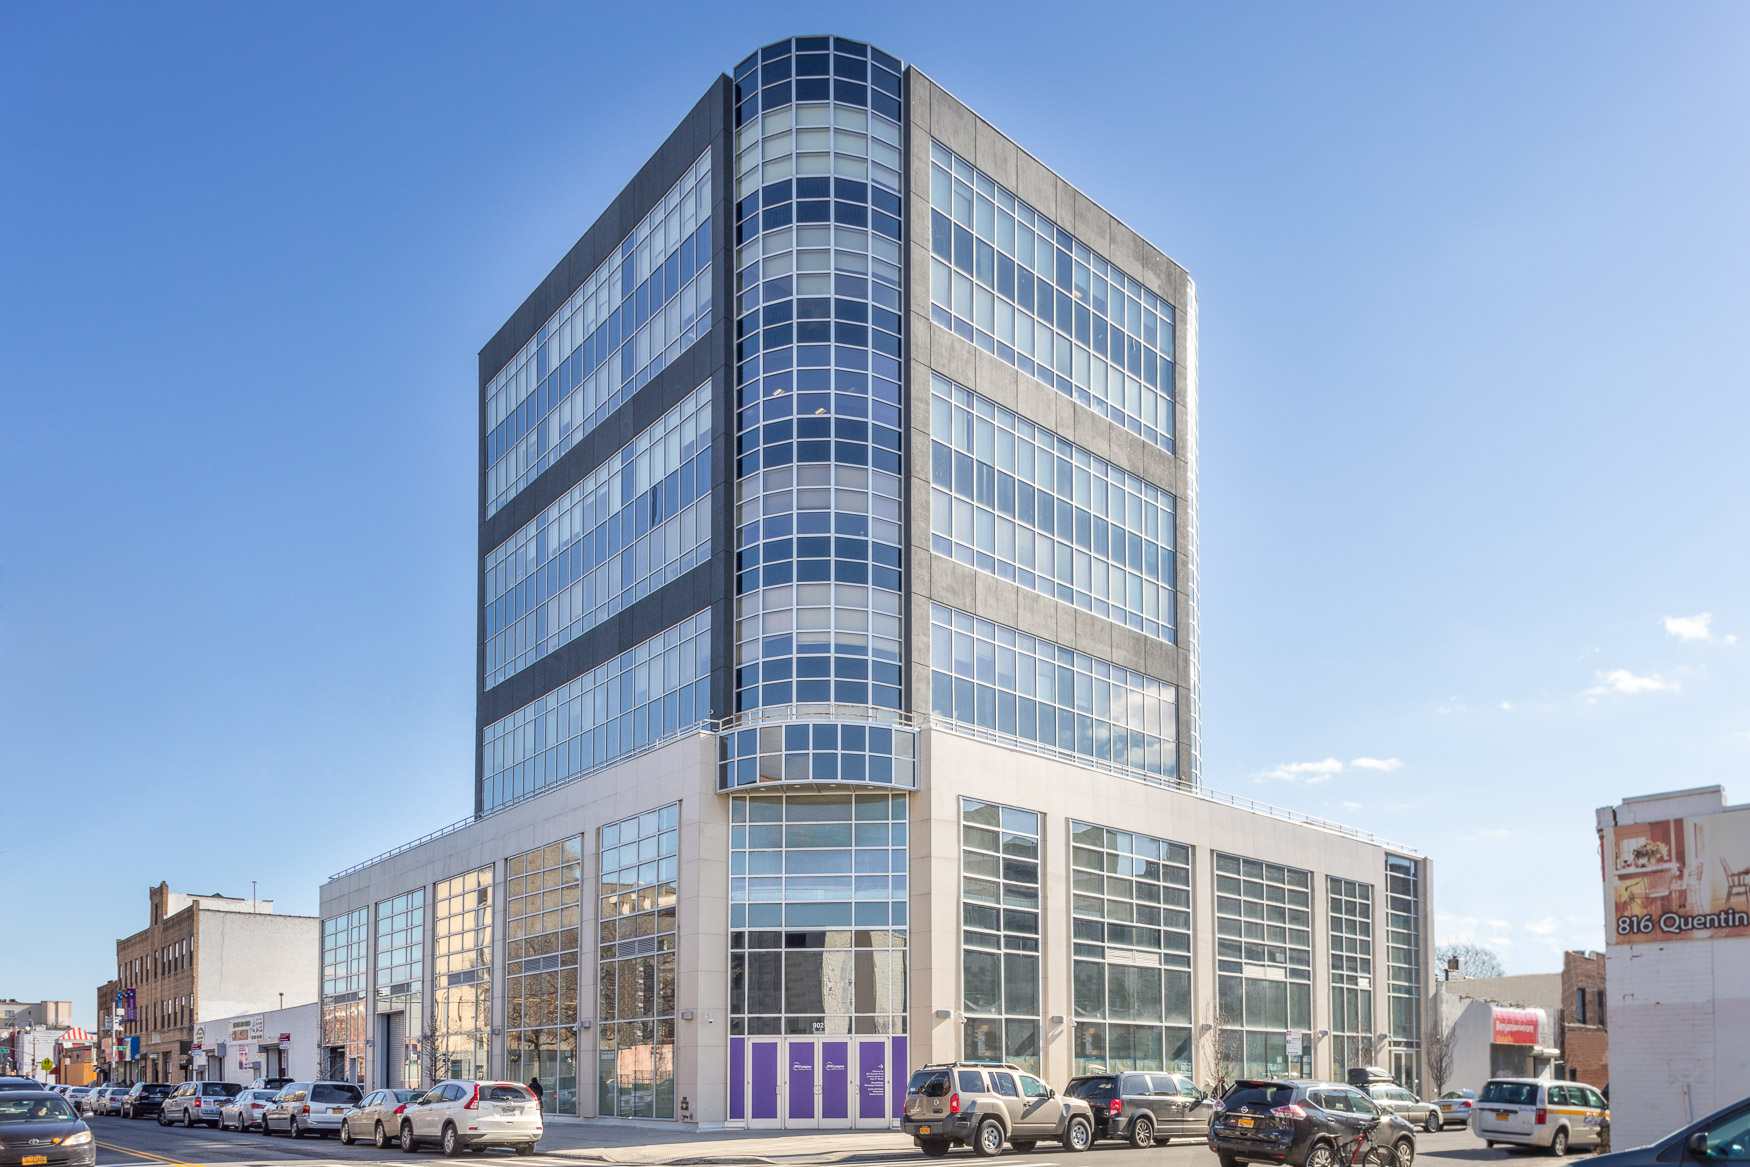 Seavest acquires Brooklyn medical office building anchored by NYU Langone Health